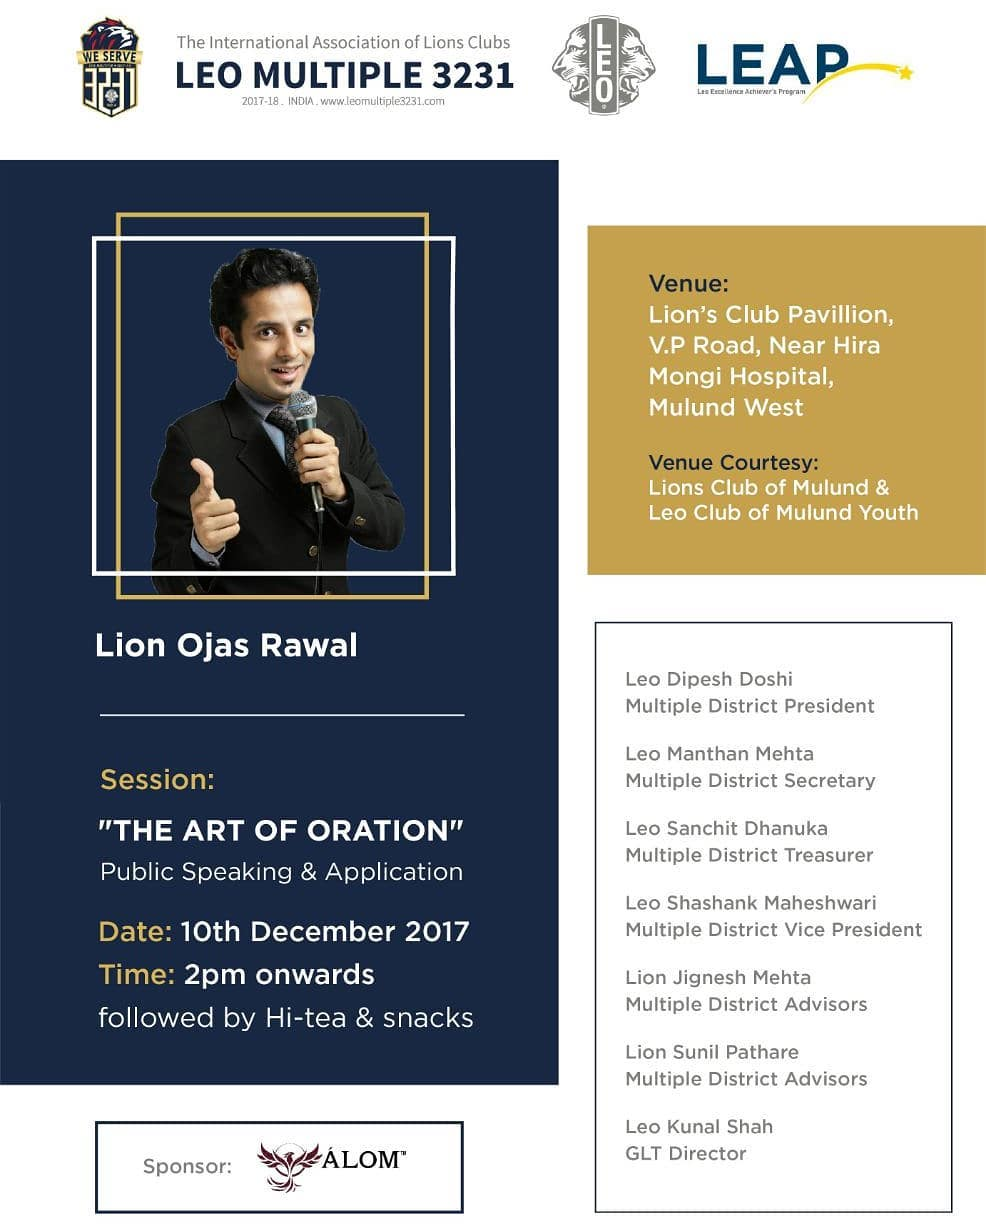 Ojas Rawal,  PublicSpeaking, Art, Stage, seminar, workshop, series, youth, group, training, event, today, toastmasters, mumbai, learn, success, skills, learning, howto, speaker, guide, speech, audience, talk, speak, leadership, trainer, speak, coach, communication, guidance